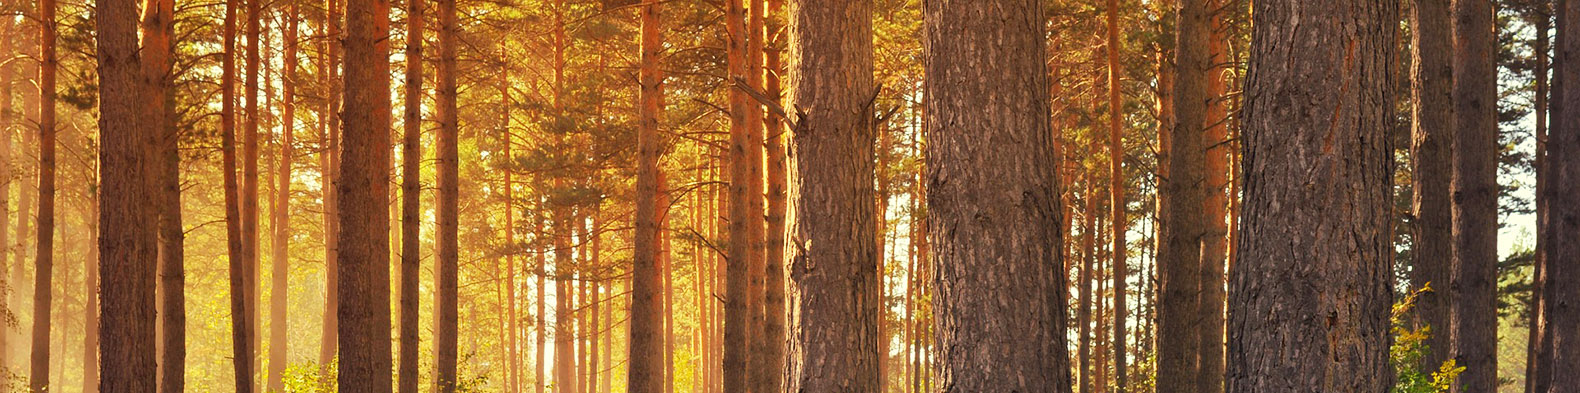 """Mother trees recognize kin and send them """"messages of wisdom"""""""